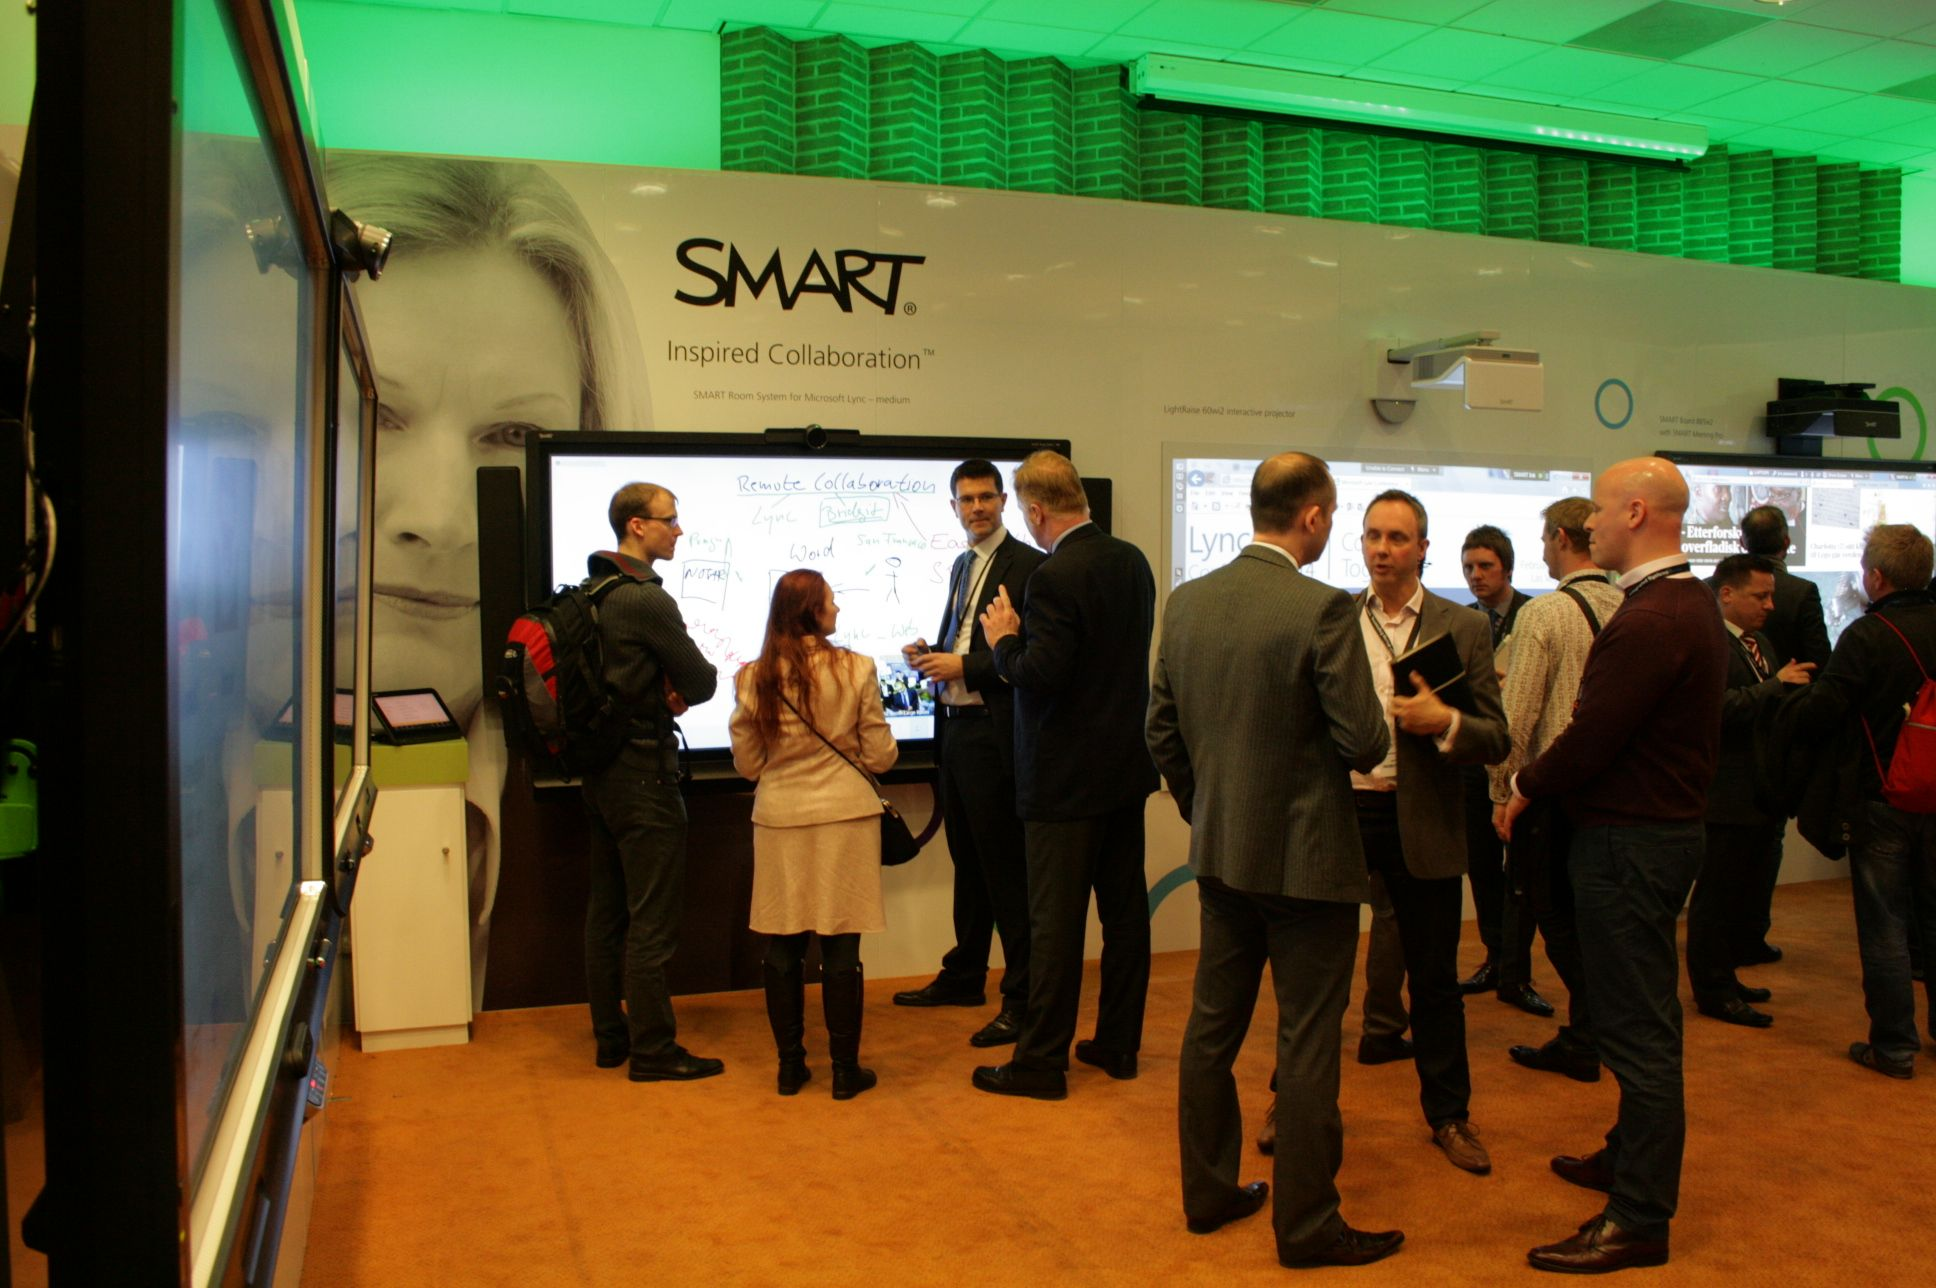 The new portfolio from SMART Technologies at ISE2014